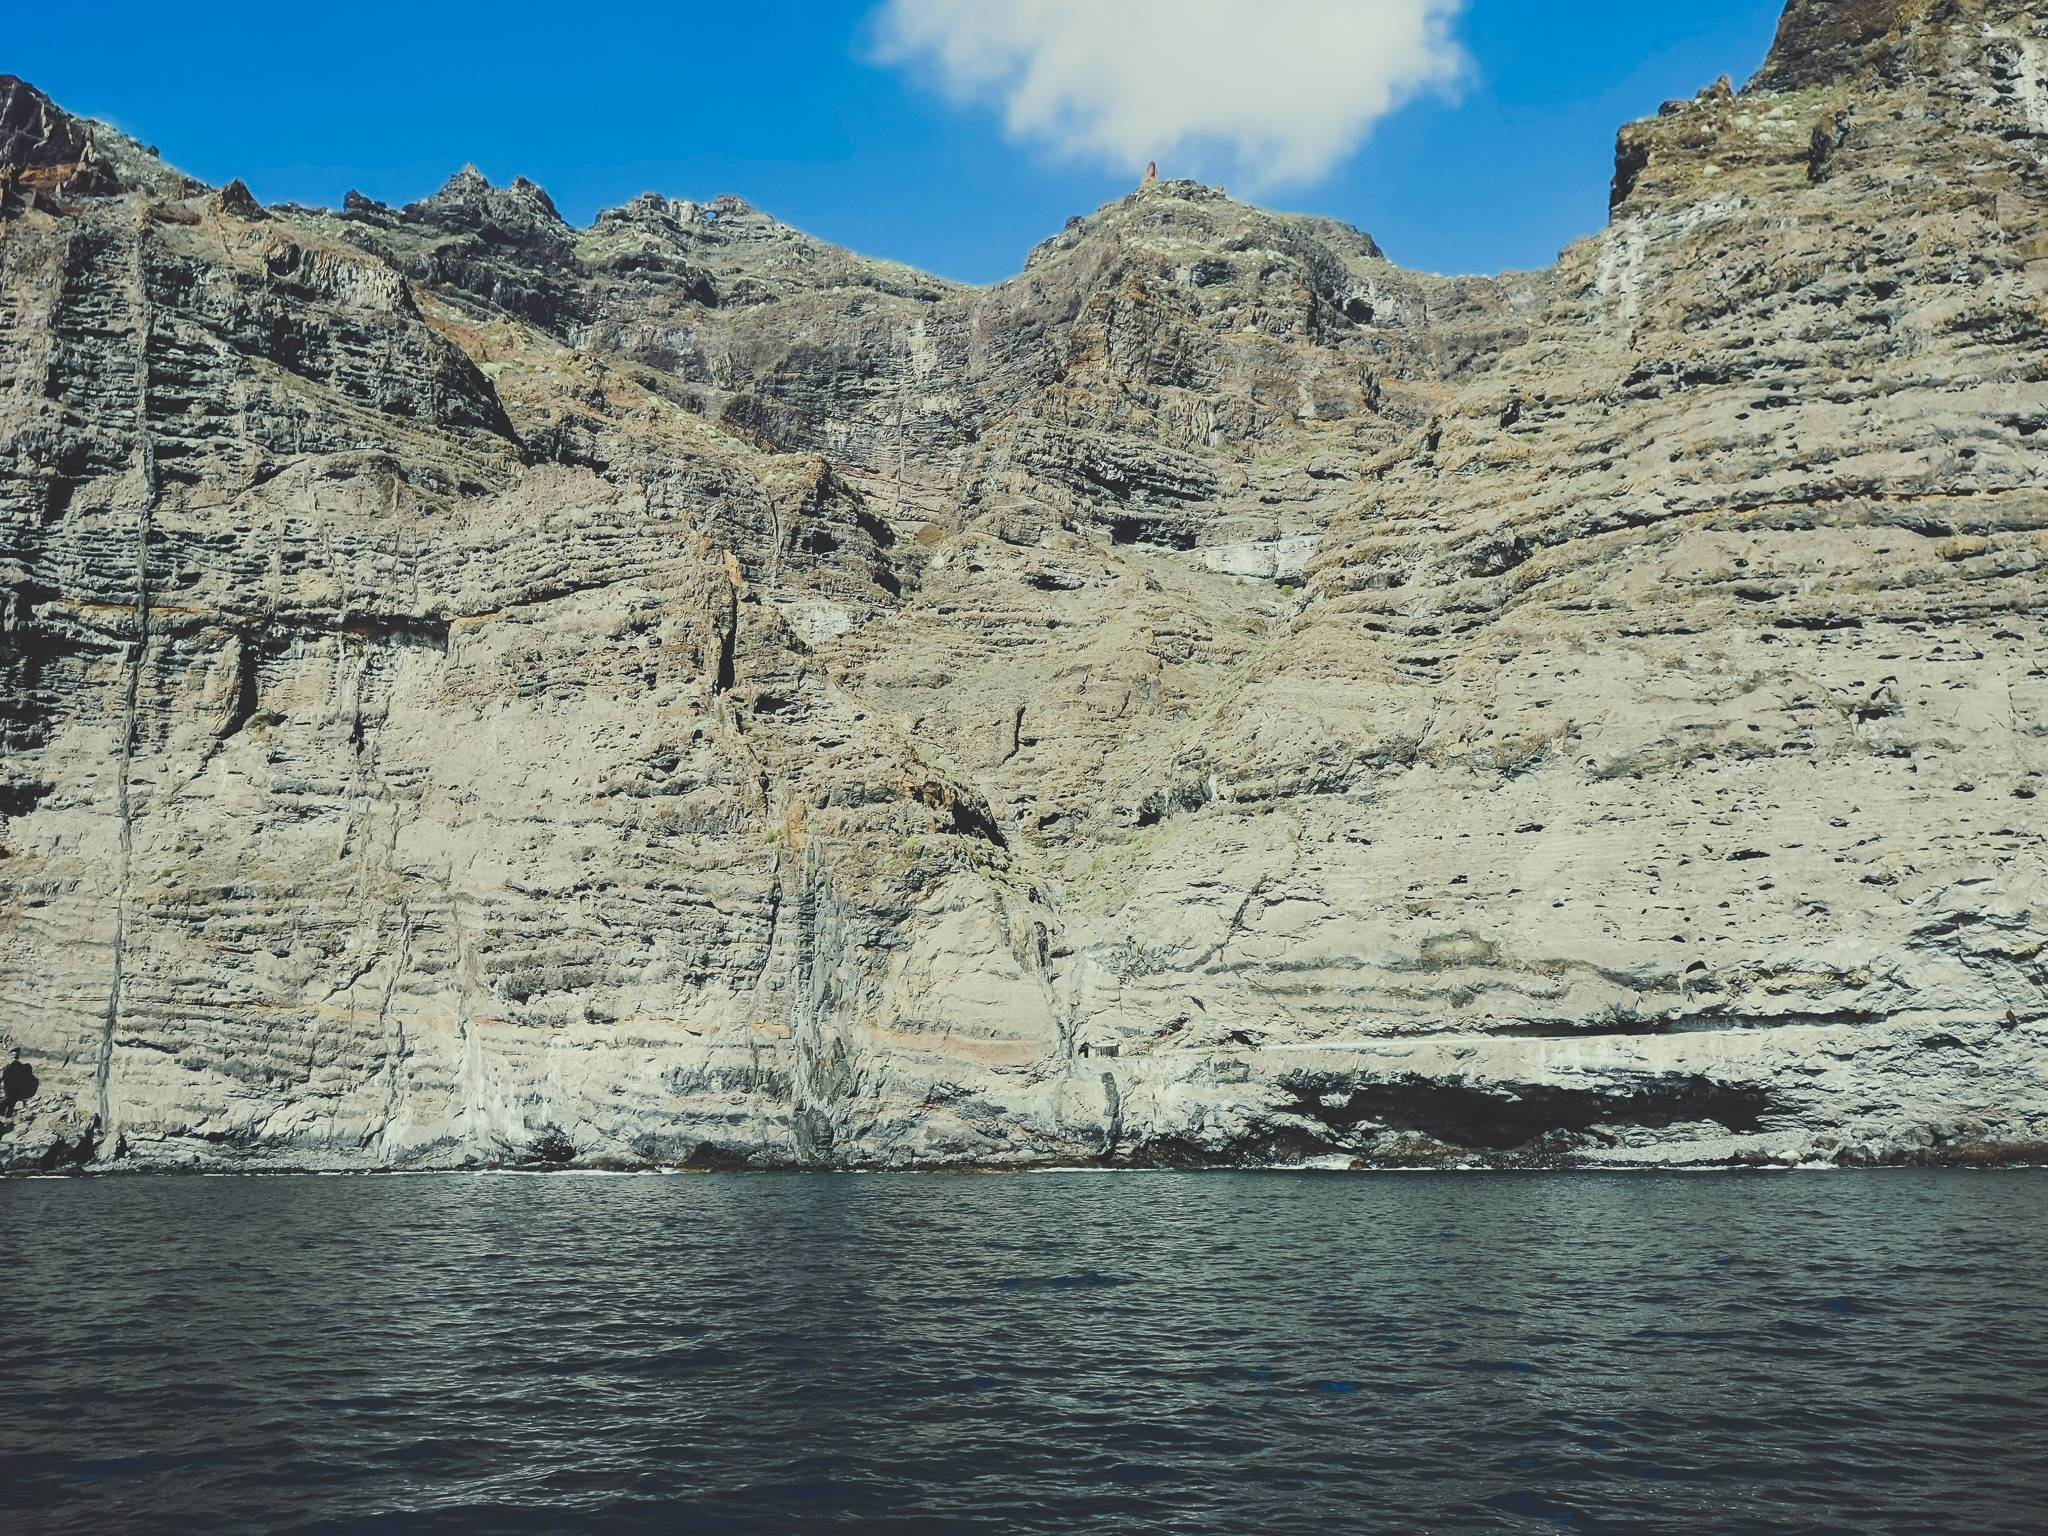 Most the dolphin watching tours will bring you close to Los gigantes for a swim. Don't miss the chance! Photo by Alis Monte [CC BY-SA 4.0], via Connecting the Dots